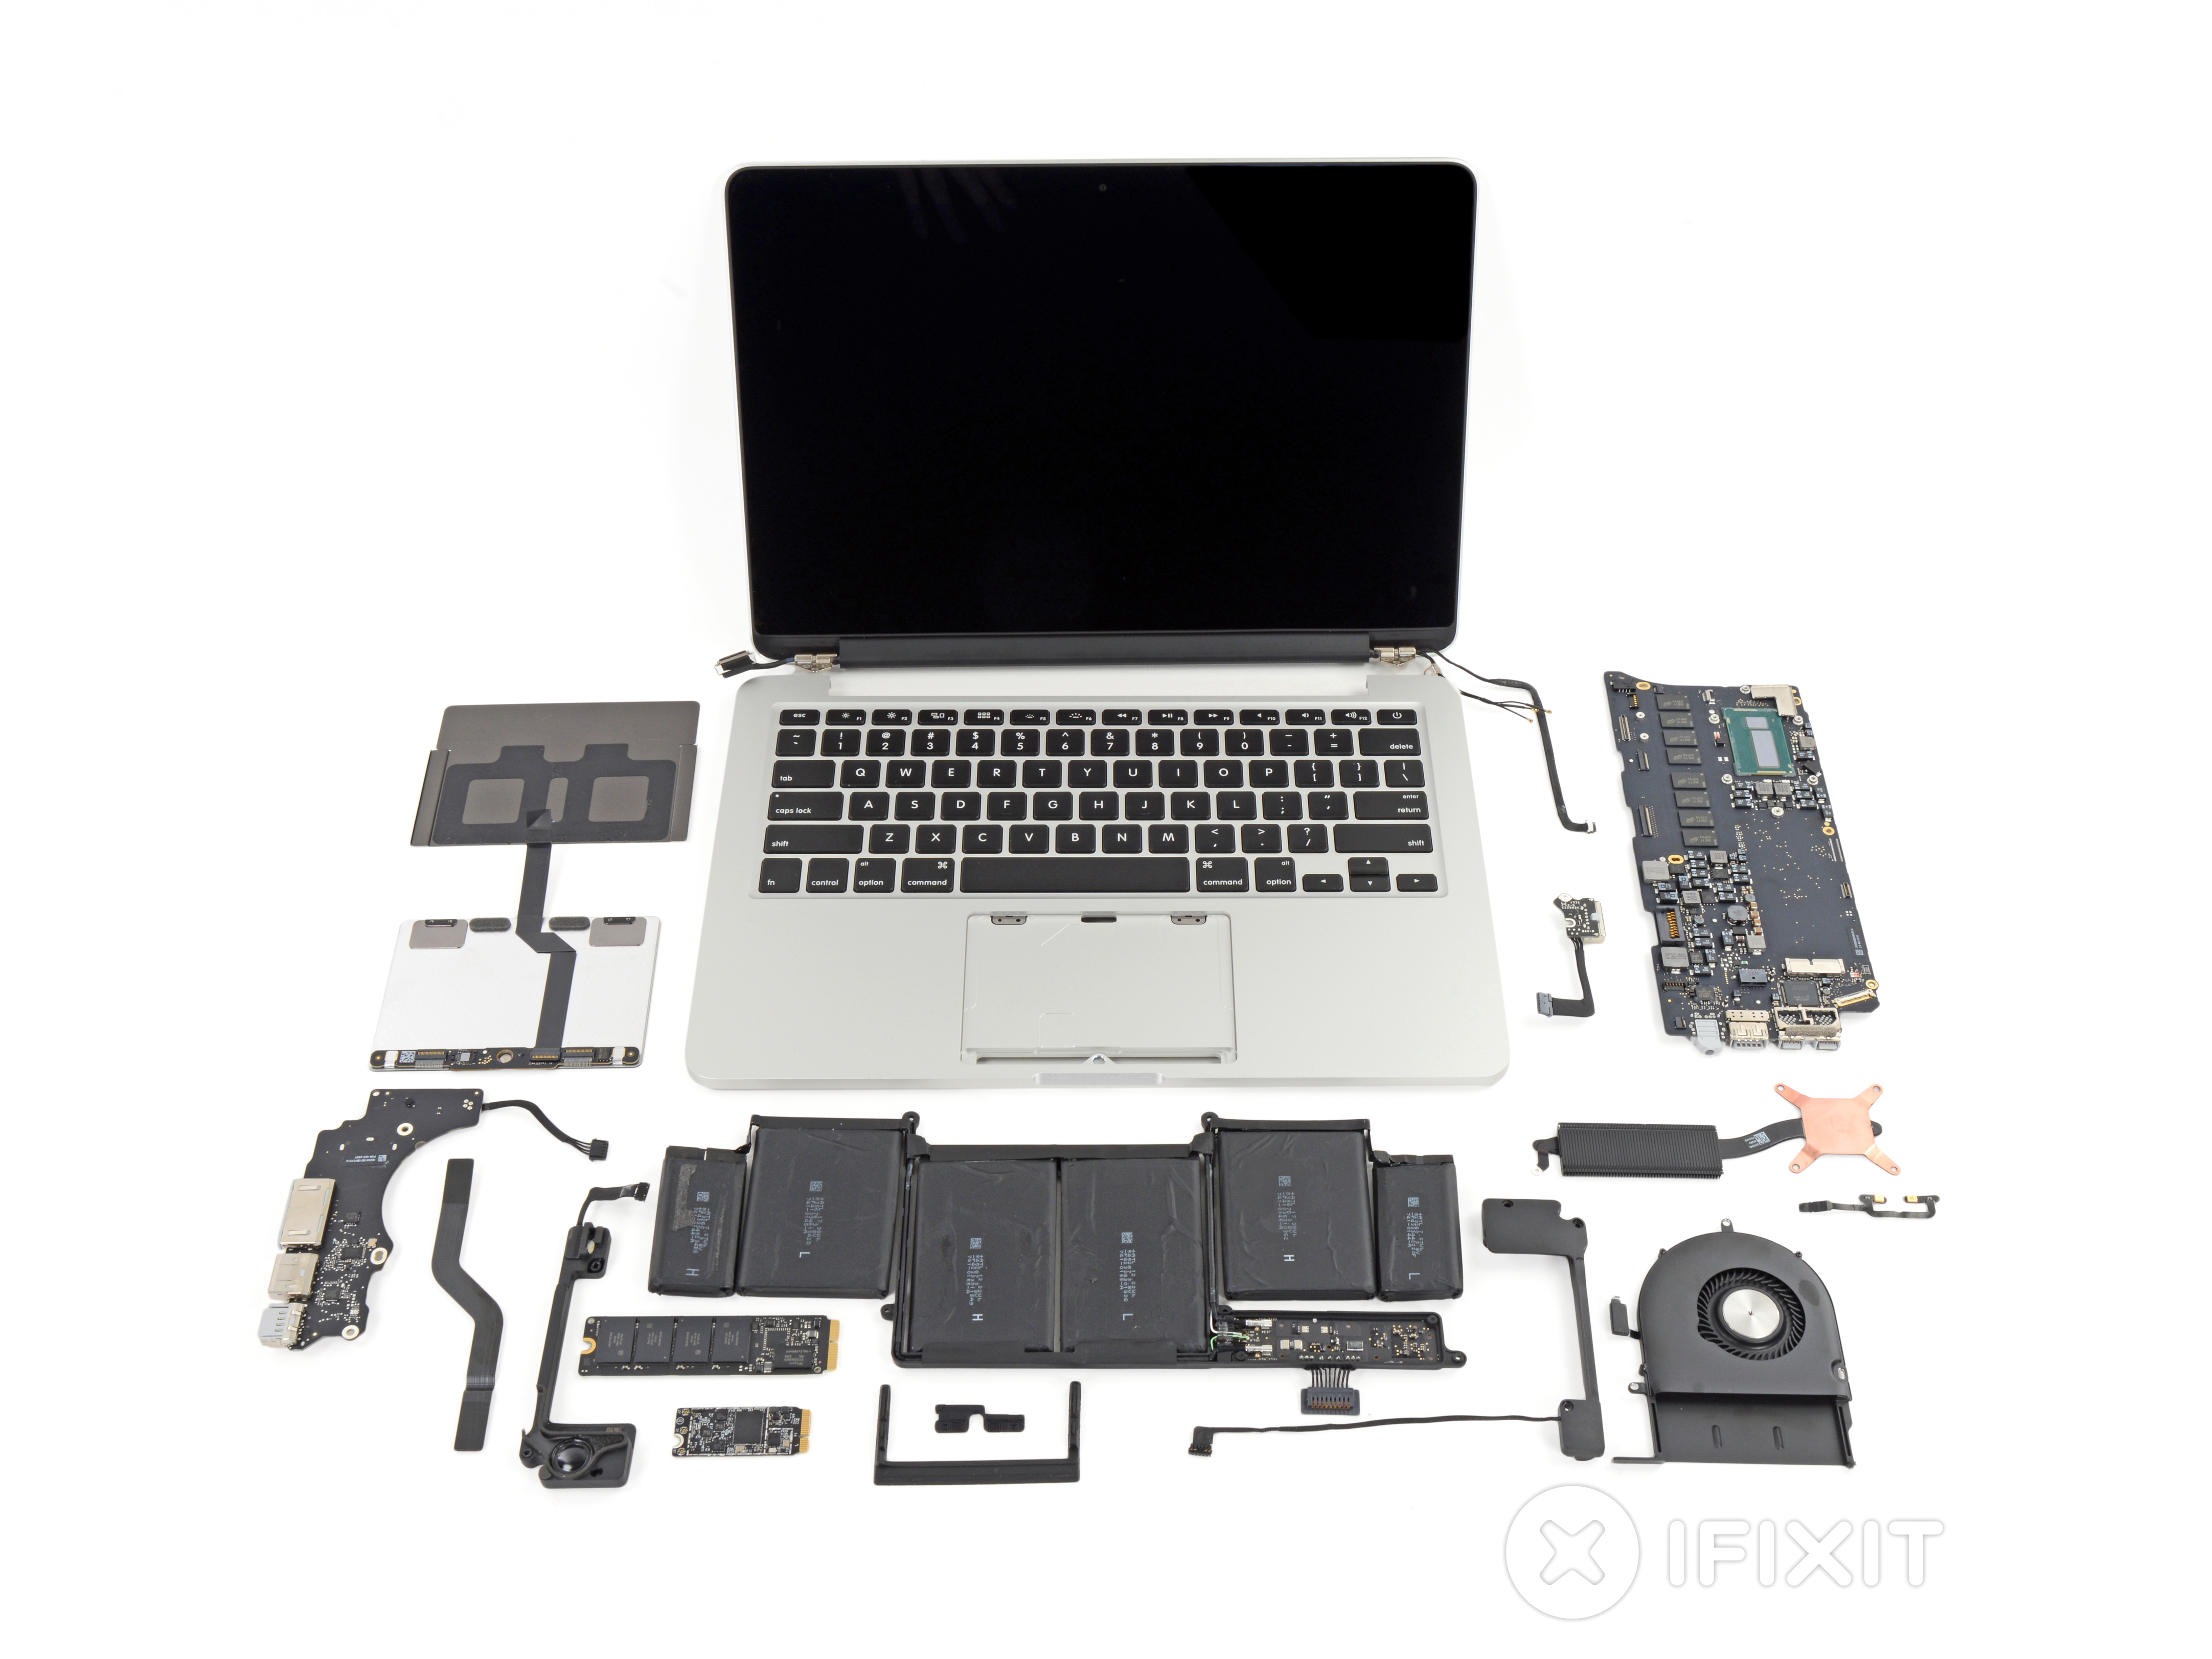 Macbook Pro 13 Retina Display Late 2013 Teardown Ifixit Add Ram To Your Laptop Easily